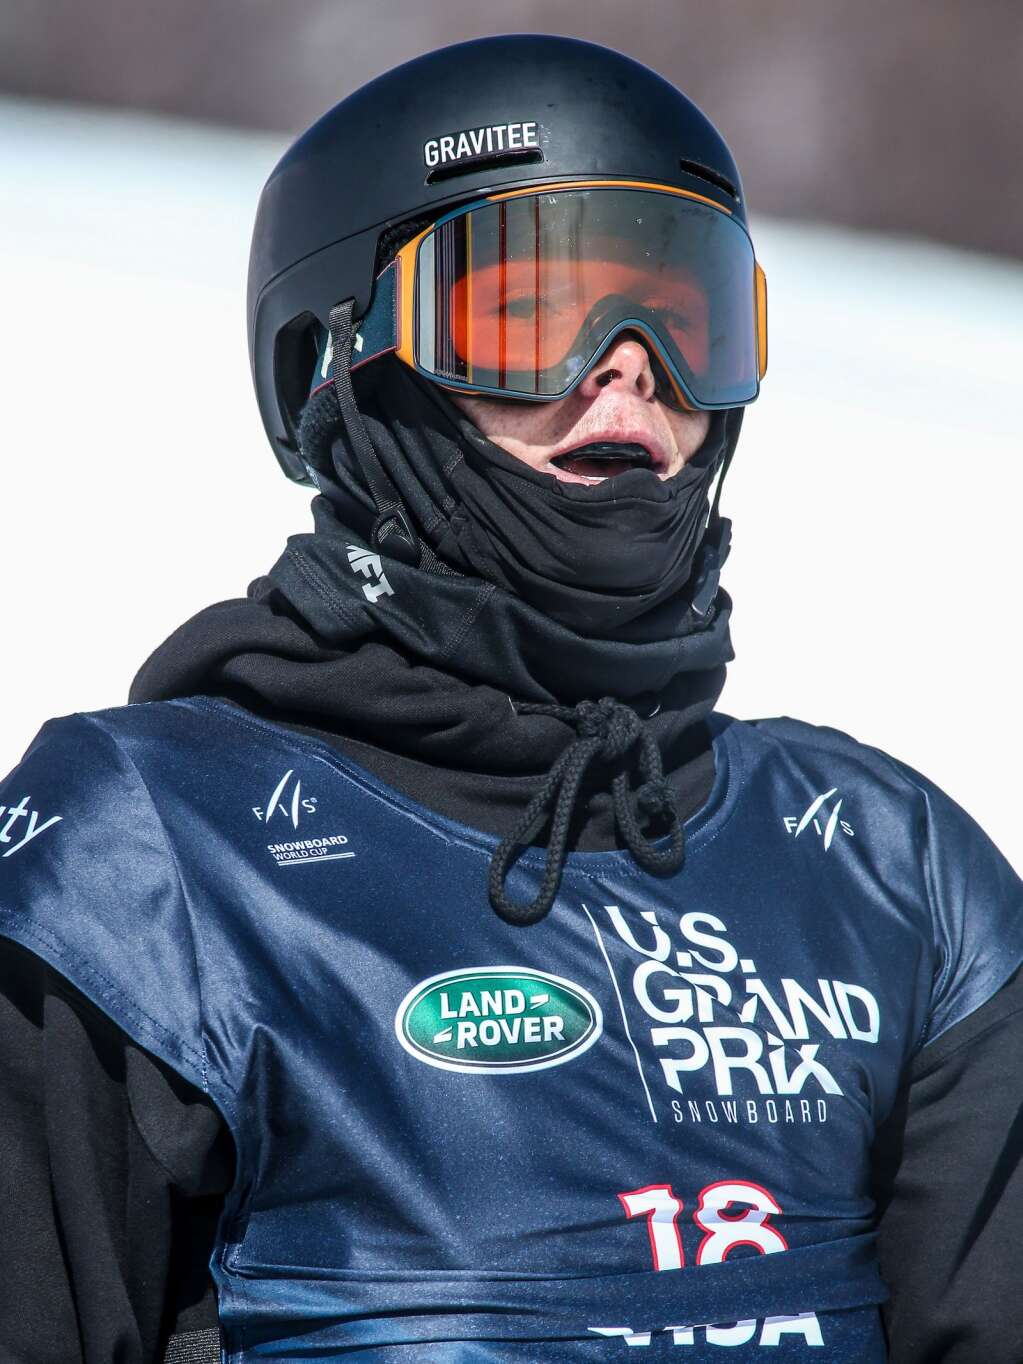 American Fynn Bullock-Womble reaches the bottom of the course during the men's snowboard slopestyle qualifier of the U.S. Grand Prix and World Cup on Friday, March 19, 2021, at Buttermilk Ski Area in Aspen. Photo by Austin Colbert/The Aspen Times.